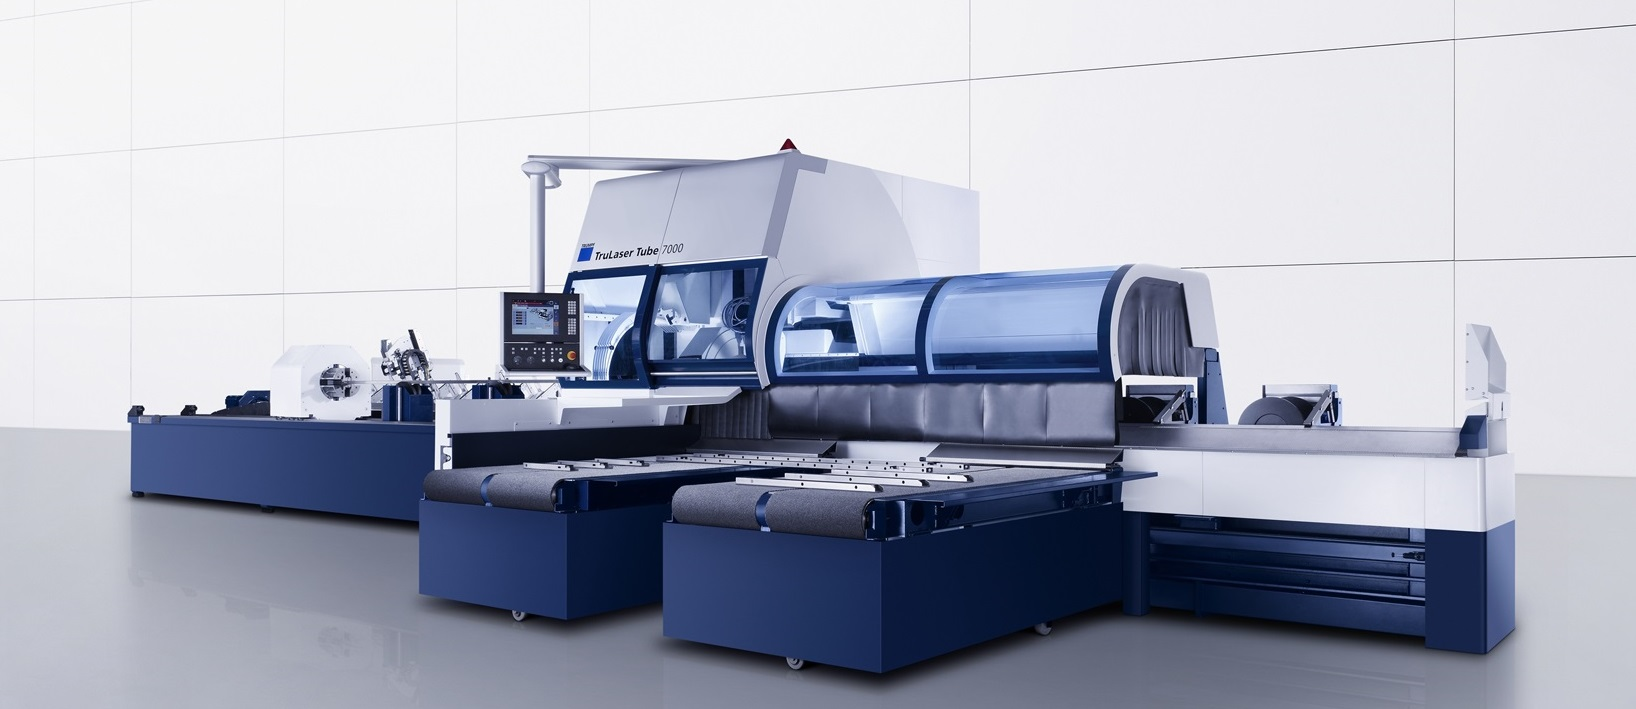 TruLaser Tube 7000 from TRUMPF helps sheet metal ...